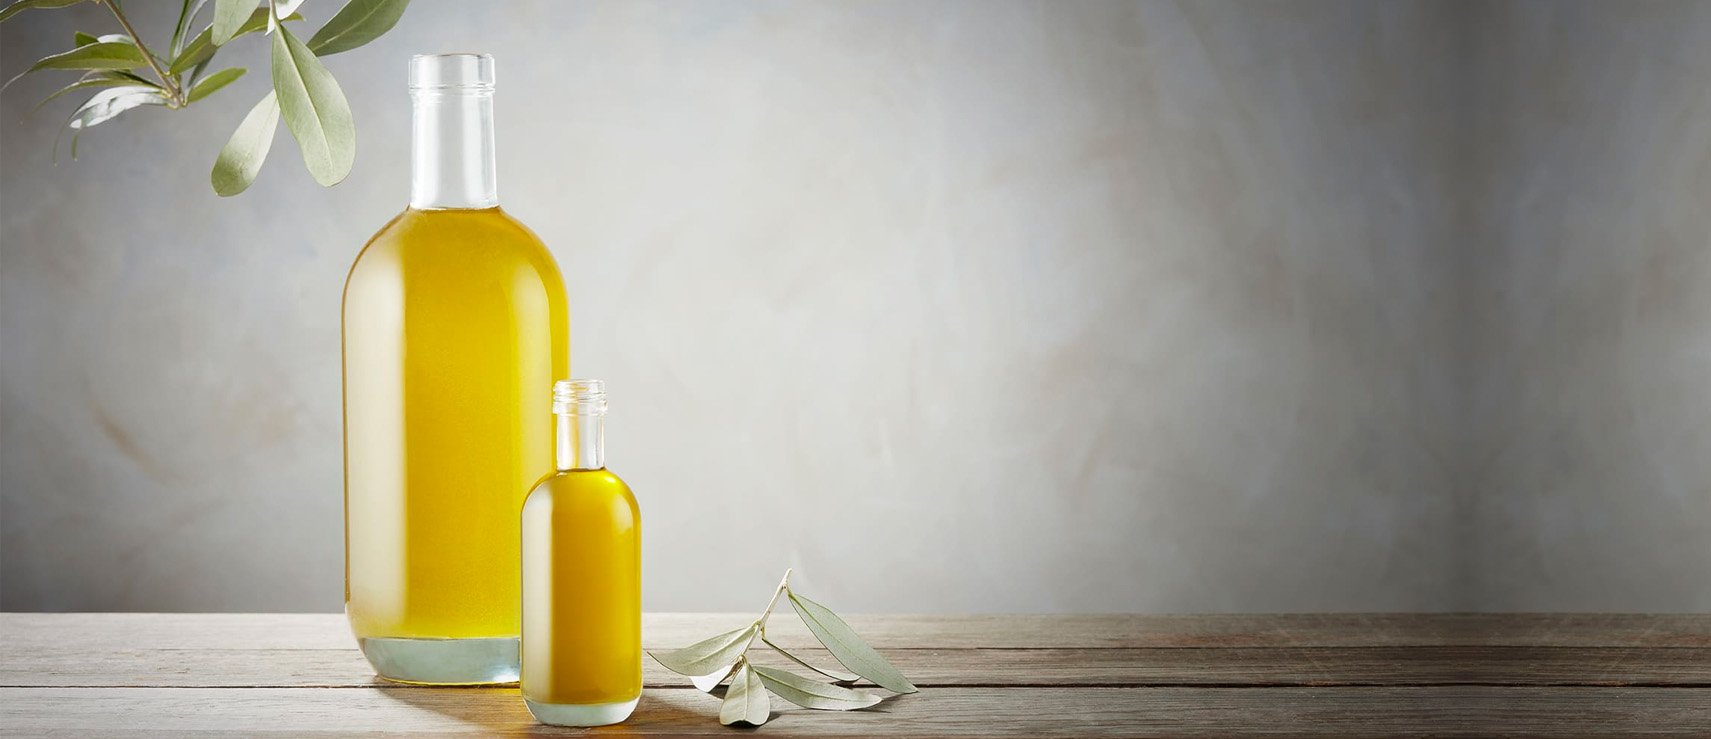 Luxury glass bottles for oils and non alcoholic drinks by Selective Line